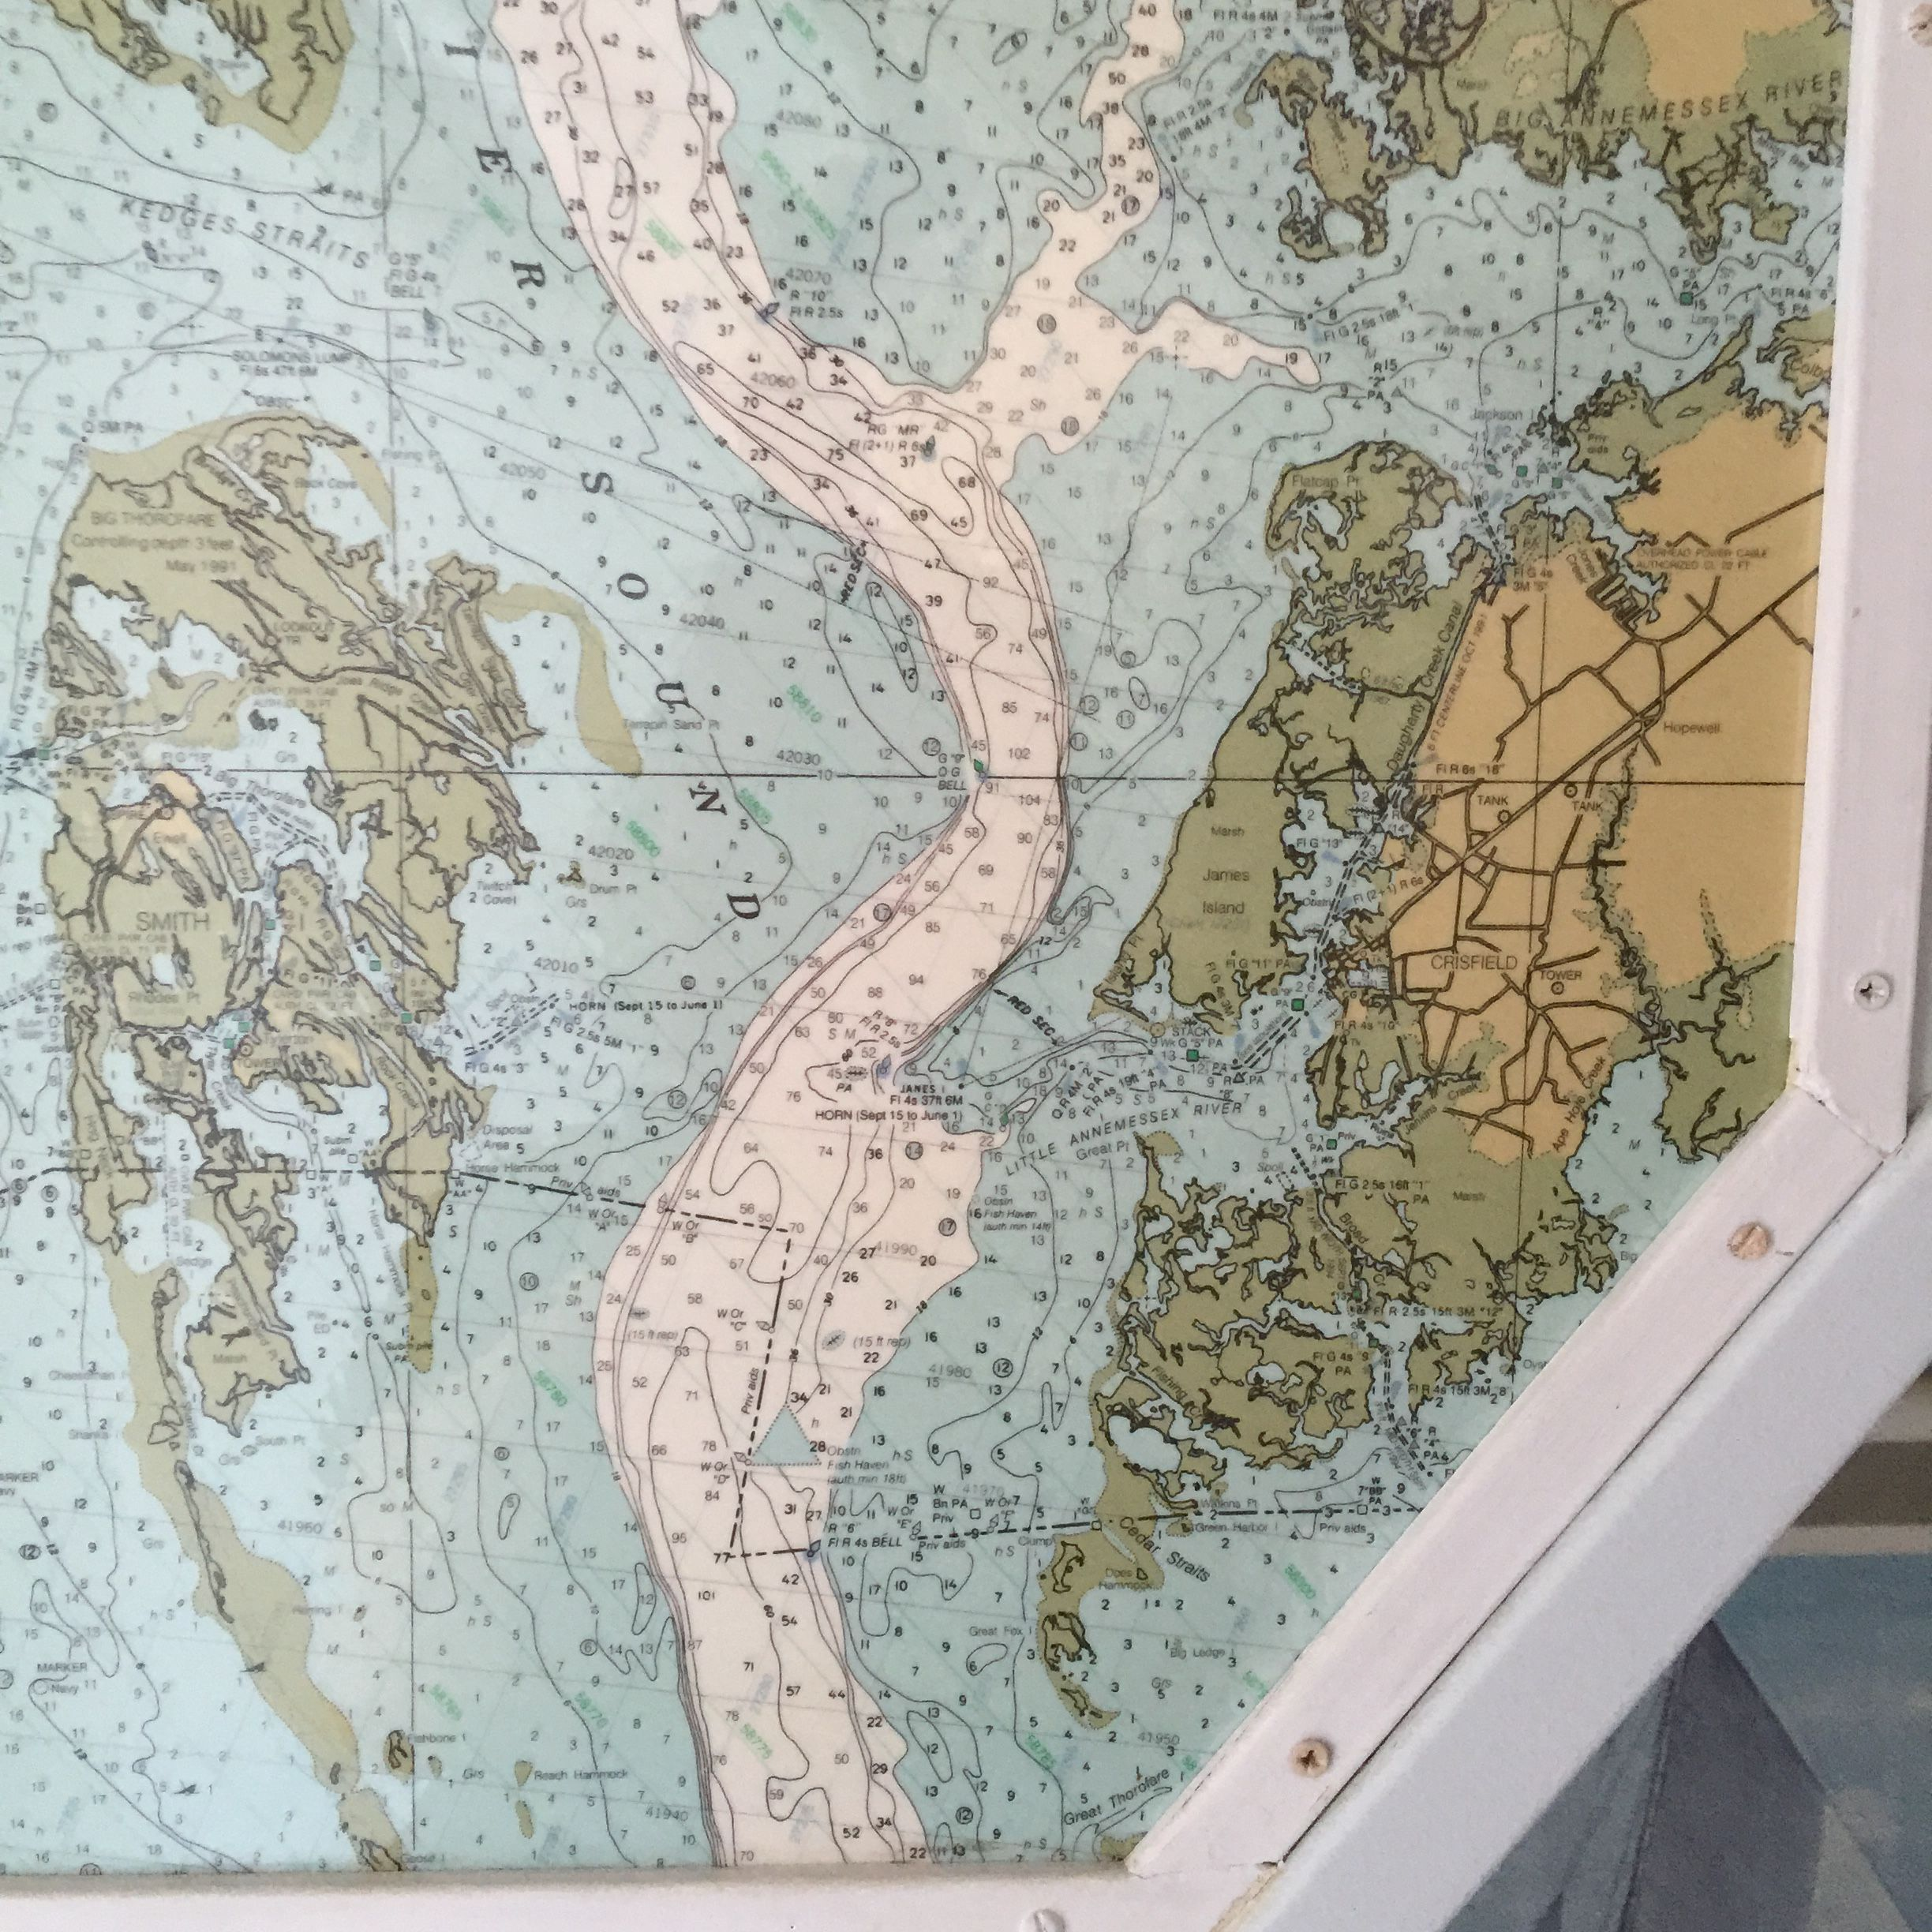 Nautical map of the Smith Island channel